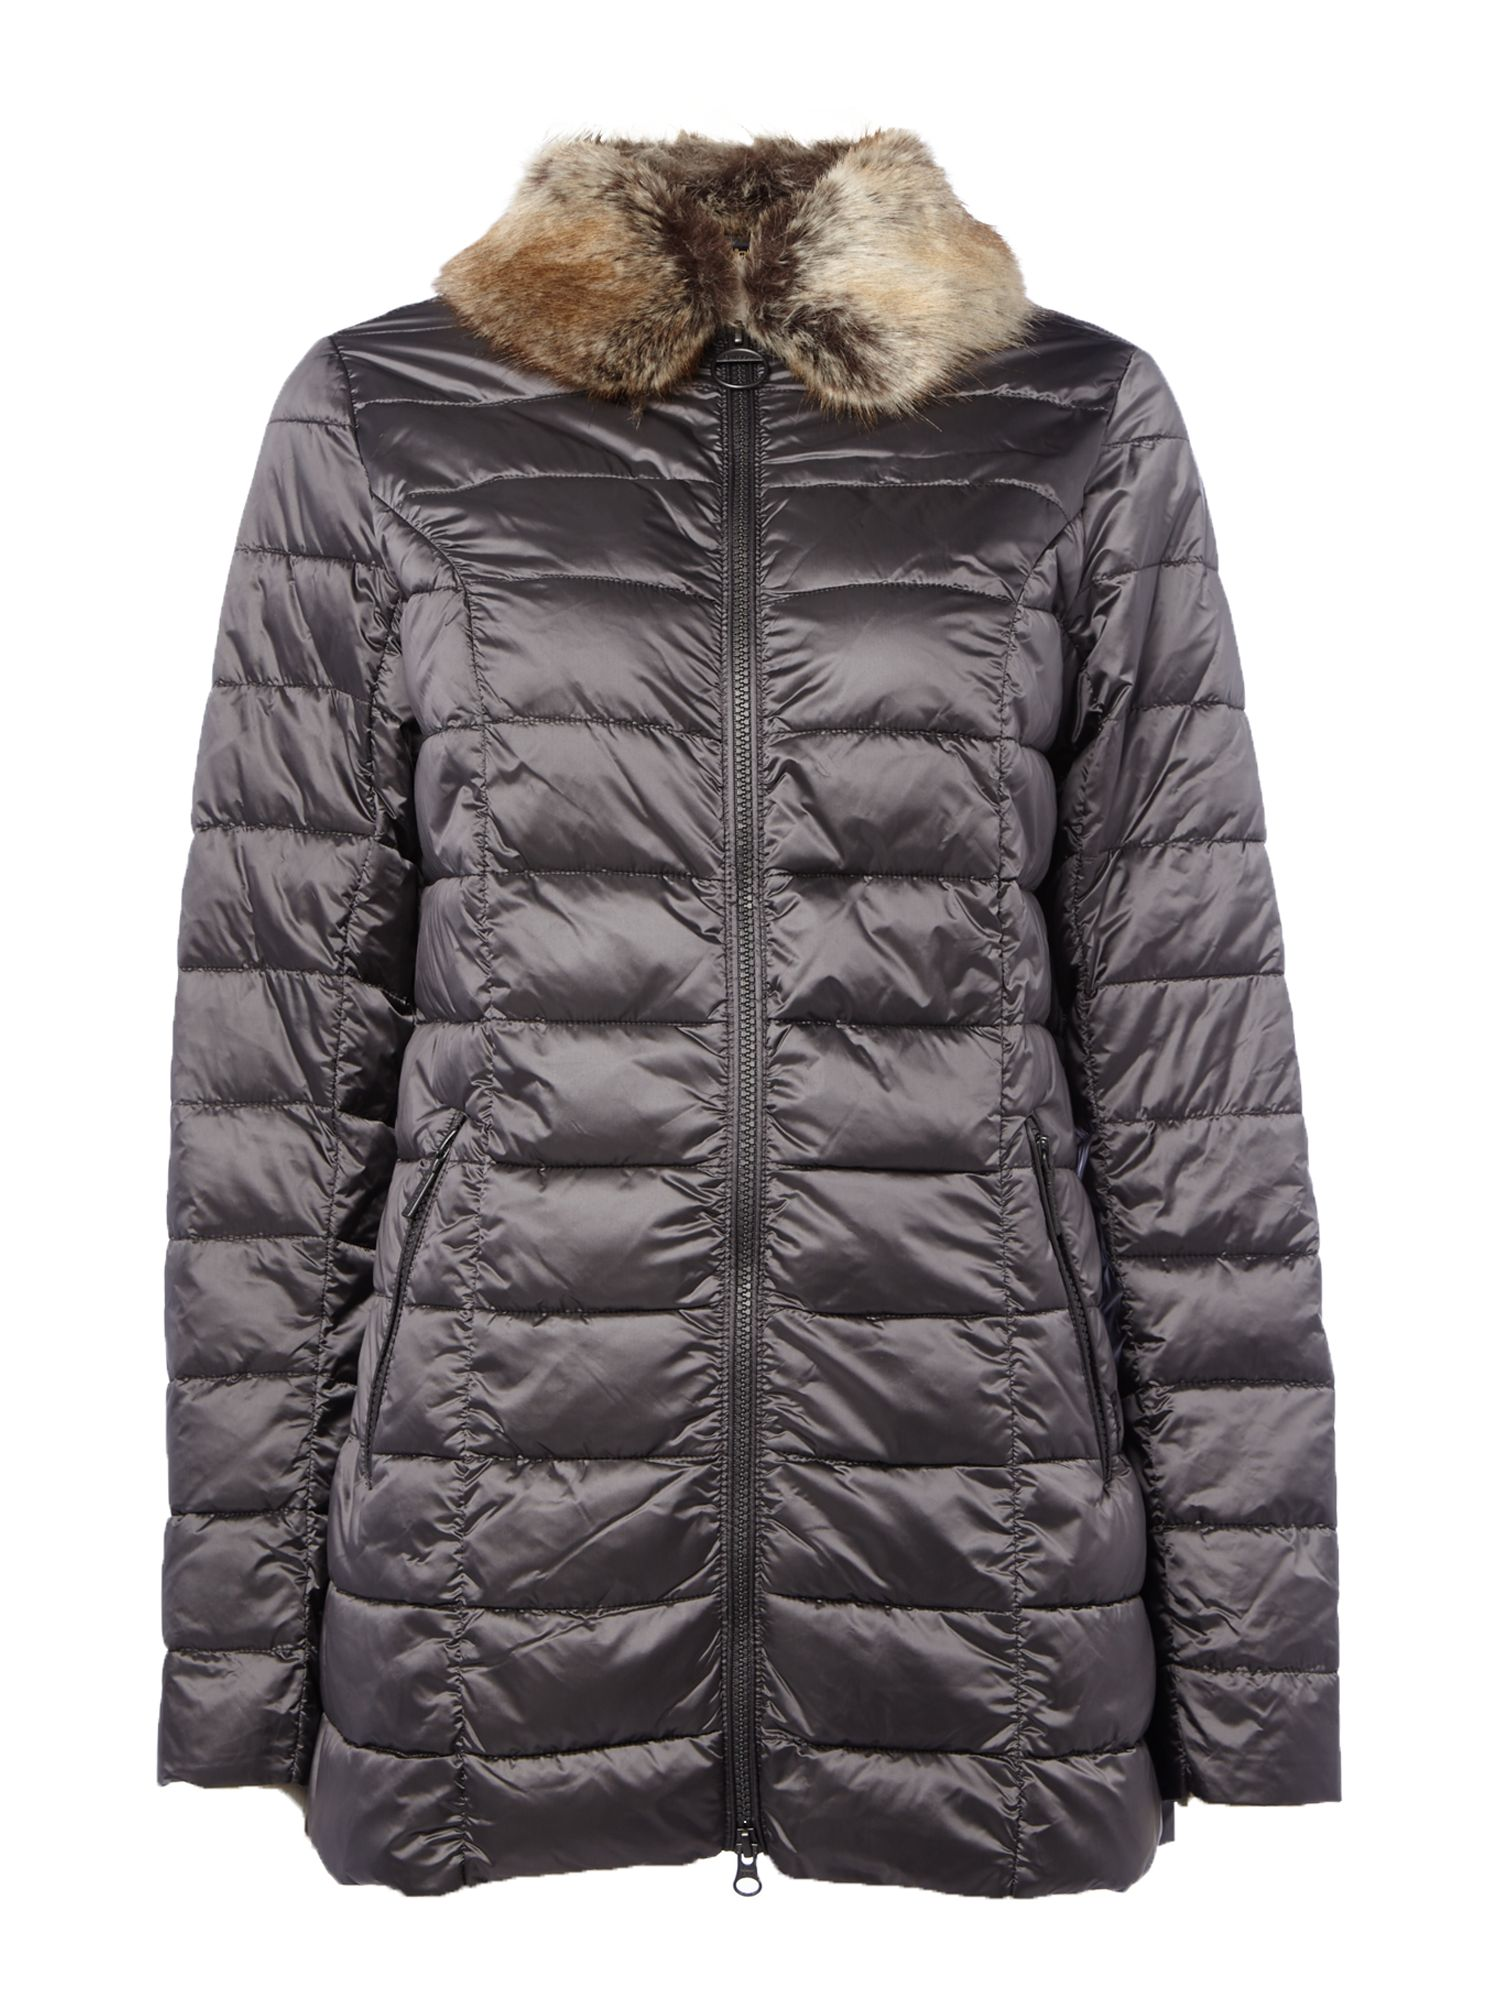 Barbour Munro Quilted Jacket With Faux Fur Collar, Dark Grey